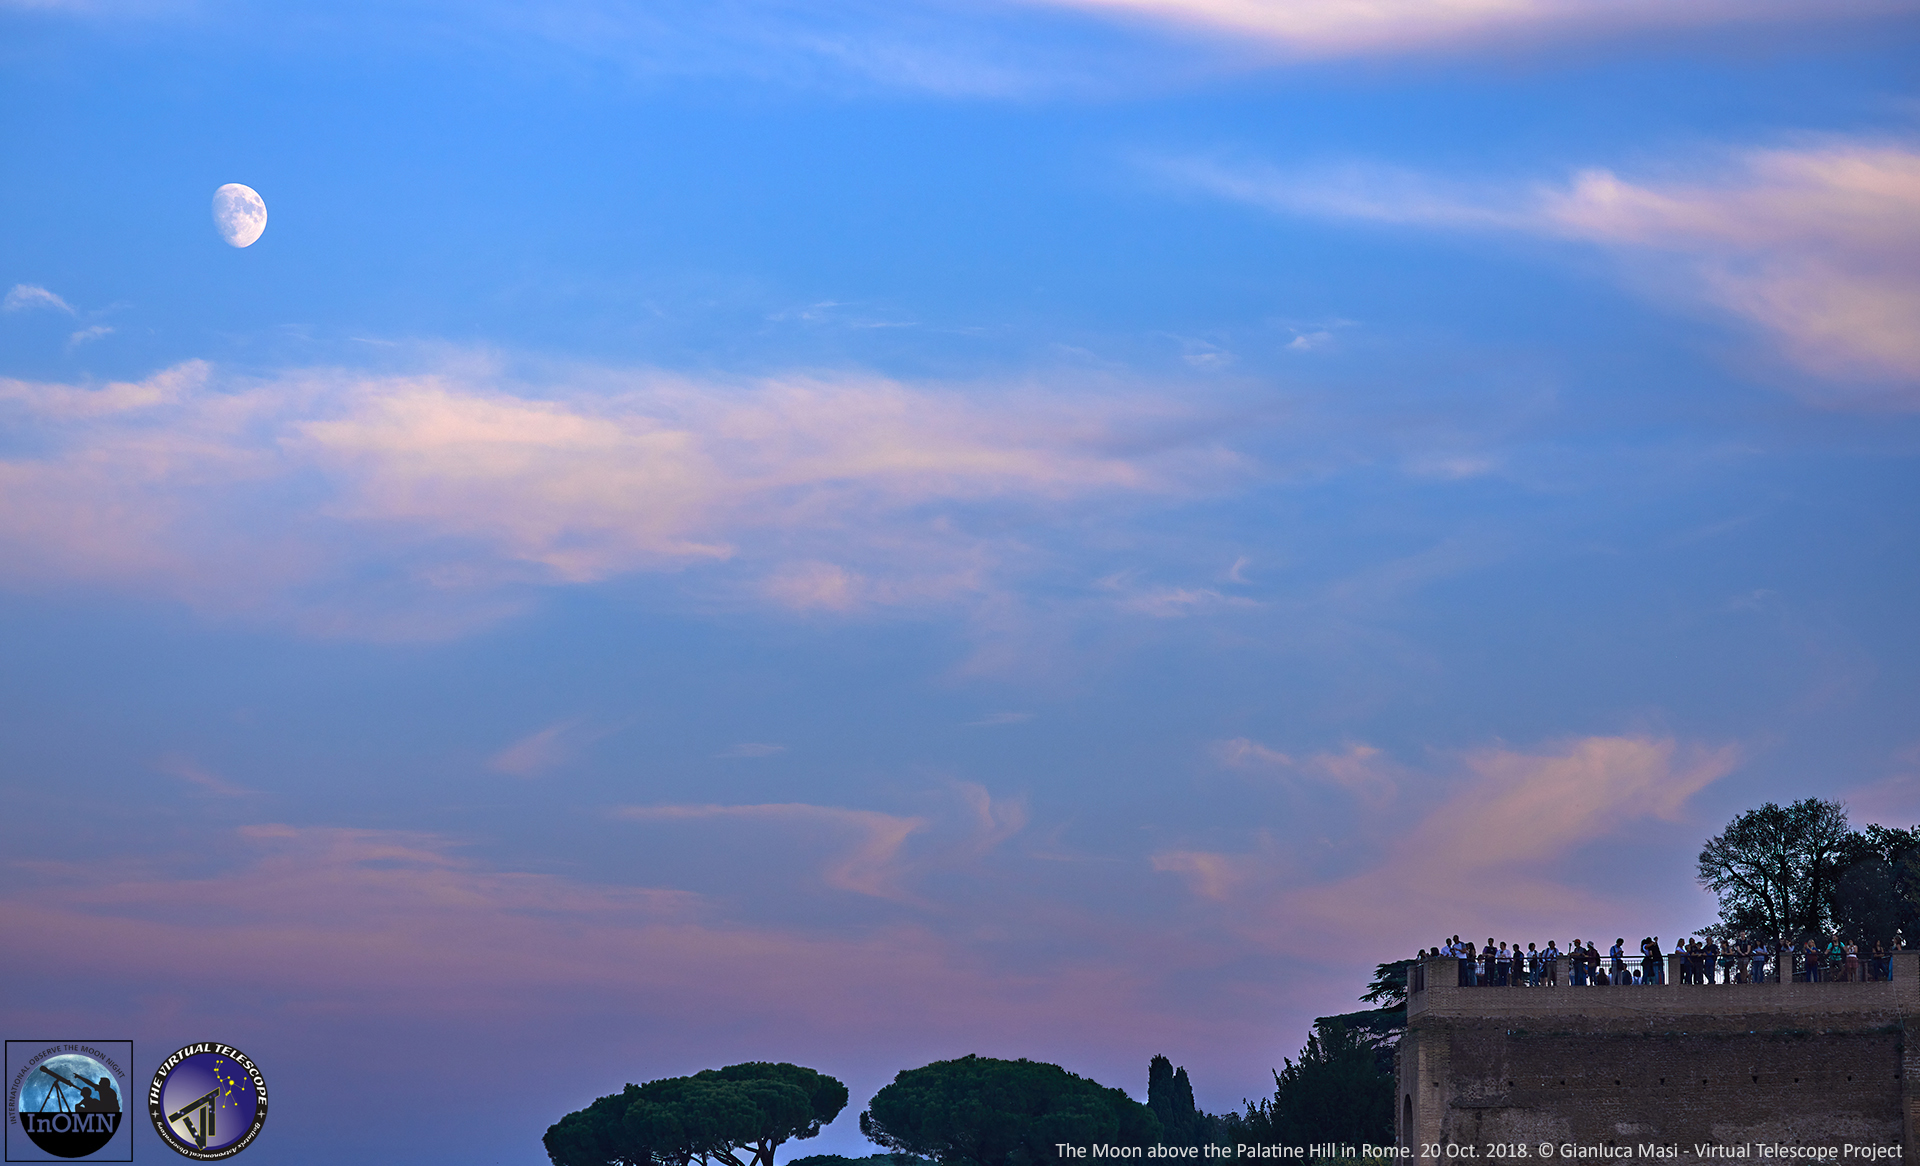 People on the Palatine Hill are enjoying the place and the Moon - 20 Oct. 2018